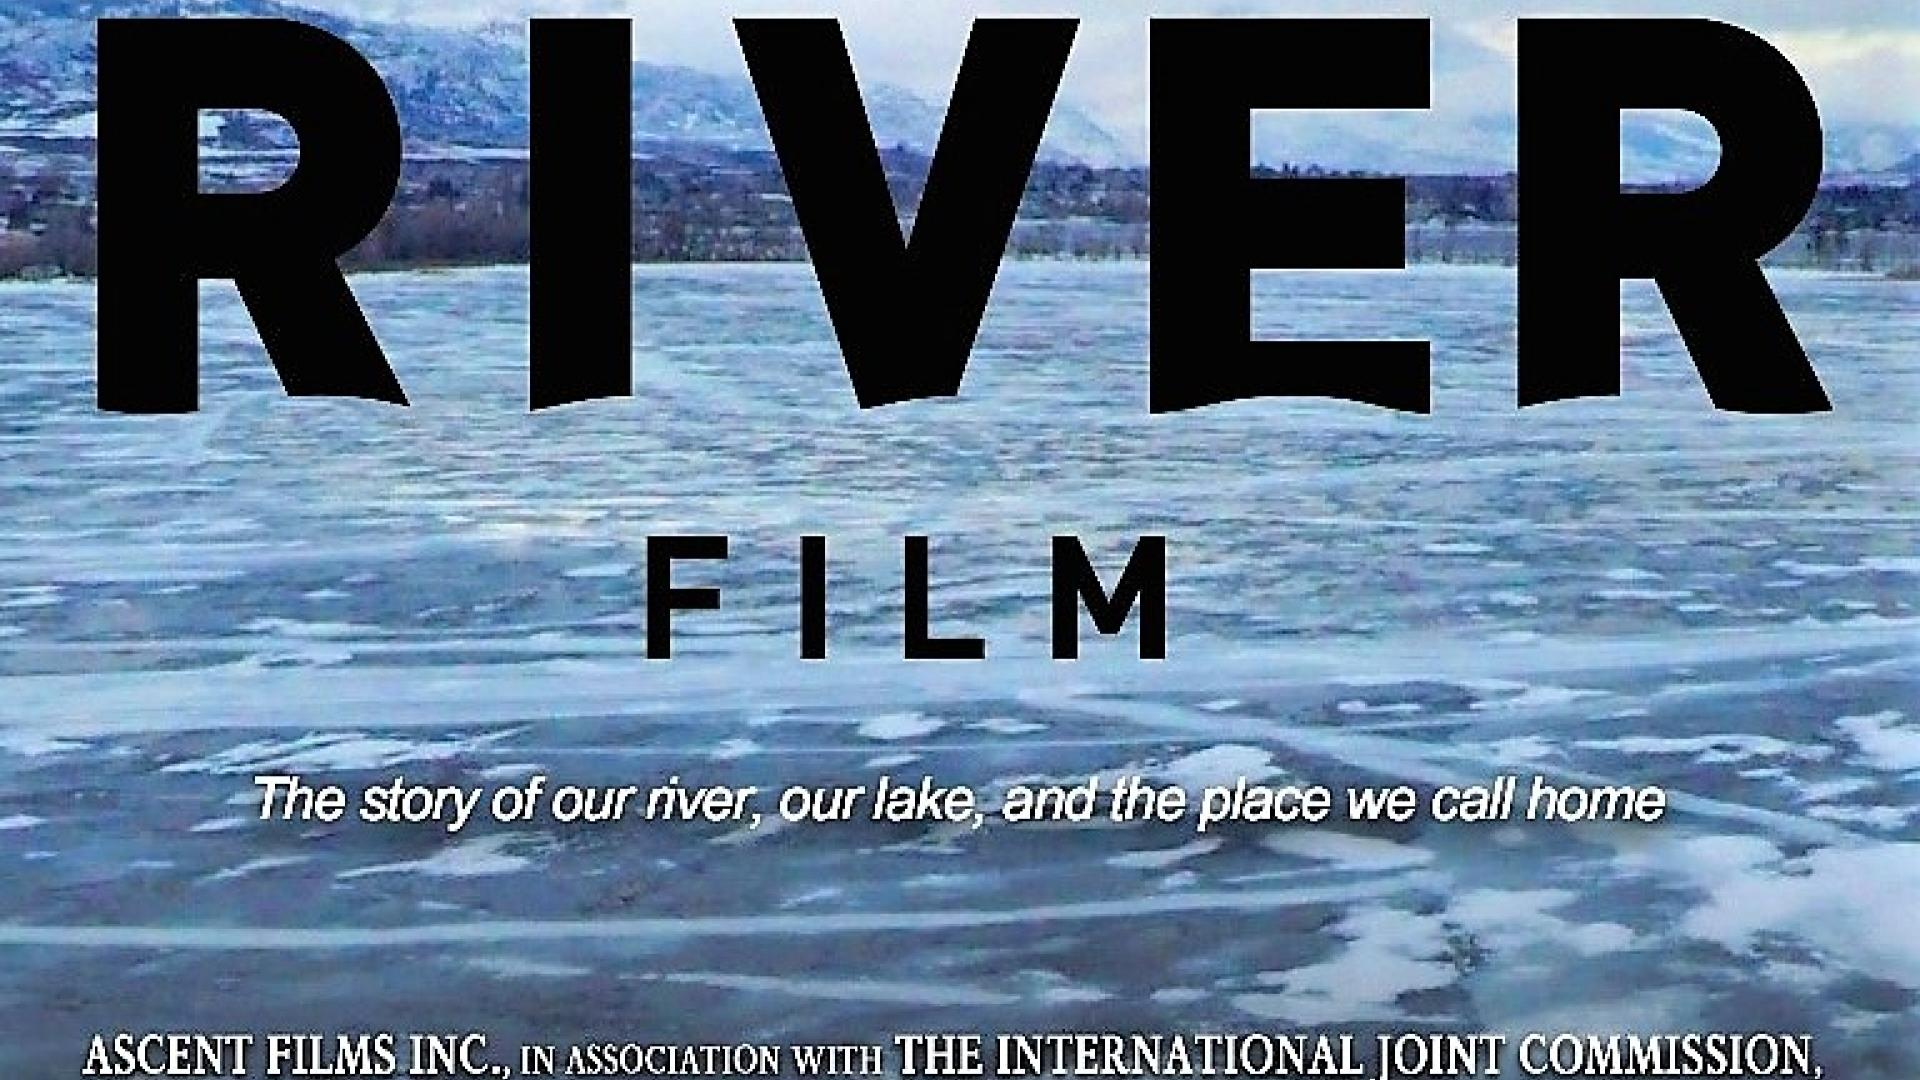 Flyer for A River Film documentary